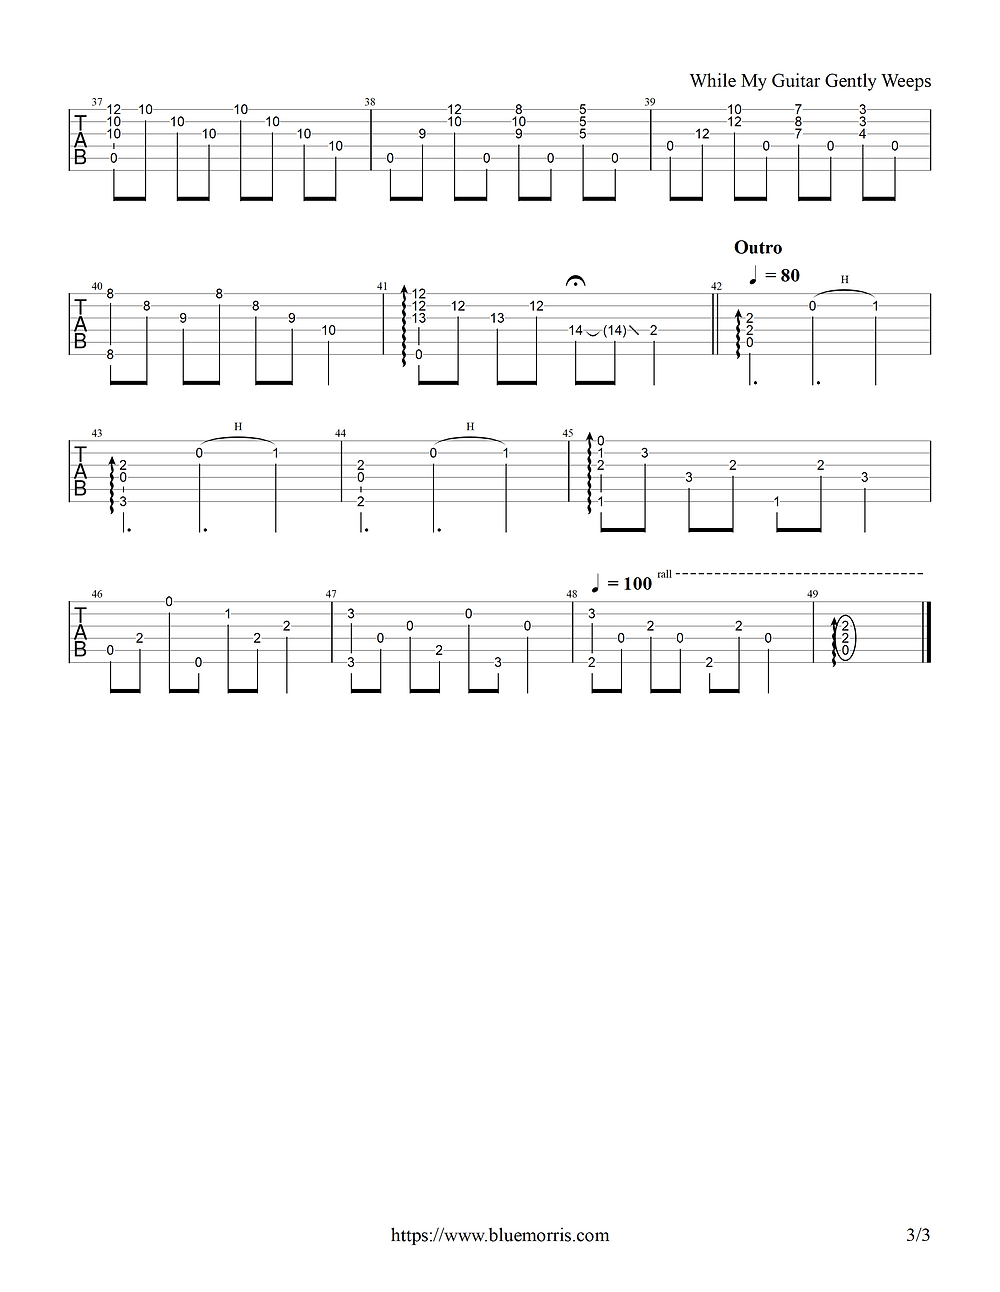 Tab for While My Guitar Gently Weeps fingerstyle page 3